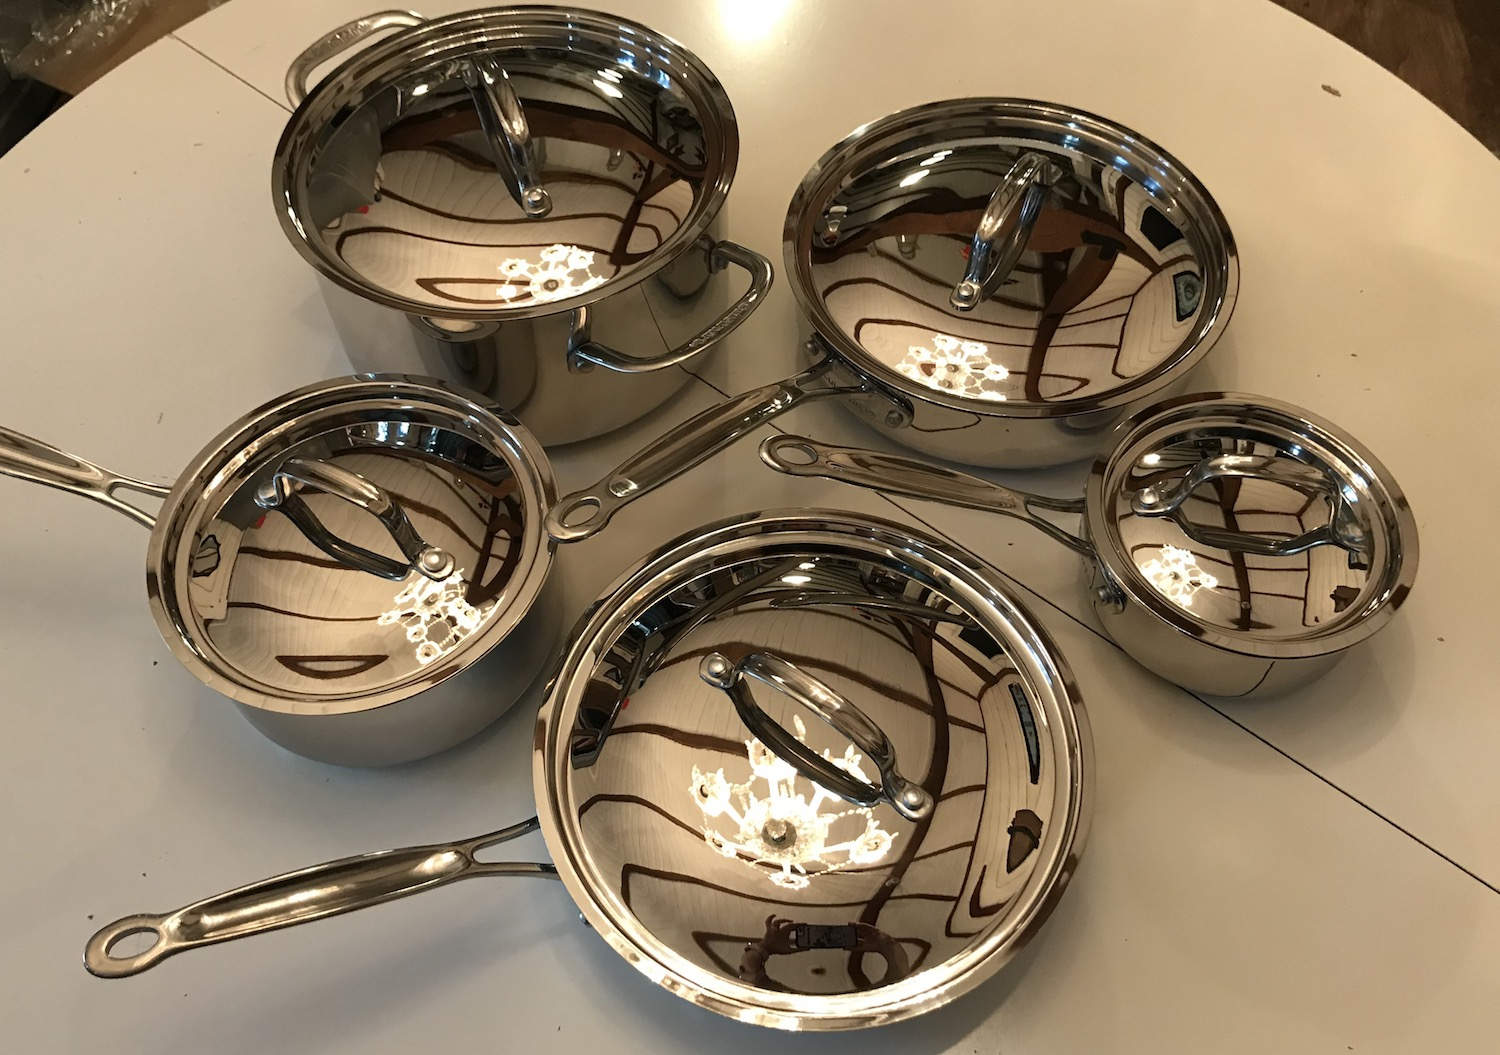 Cuisinart Cookware Review - unboxed